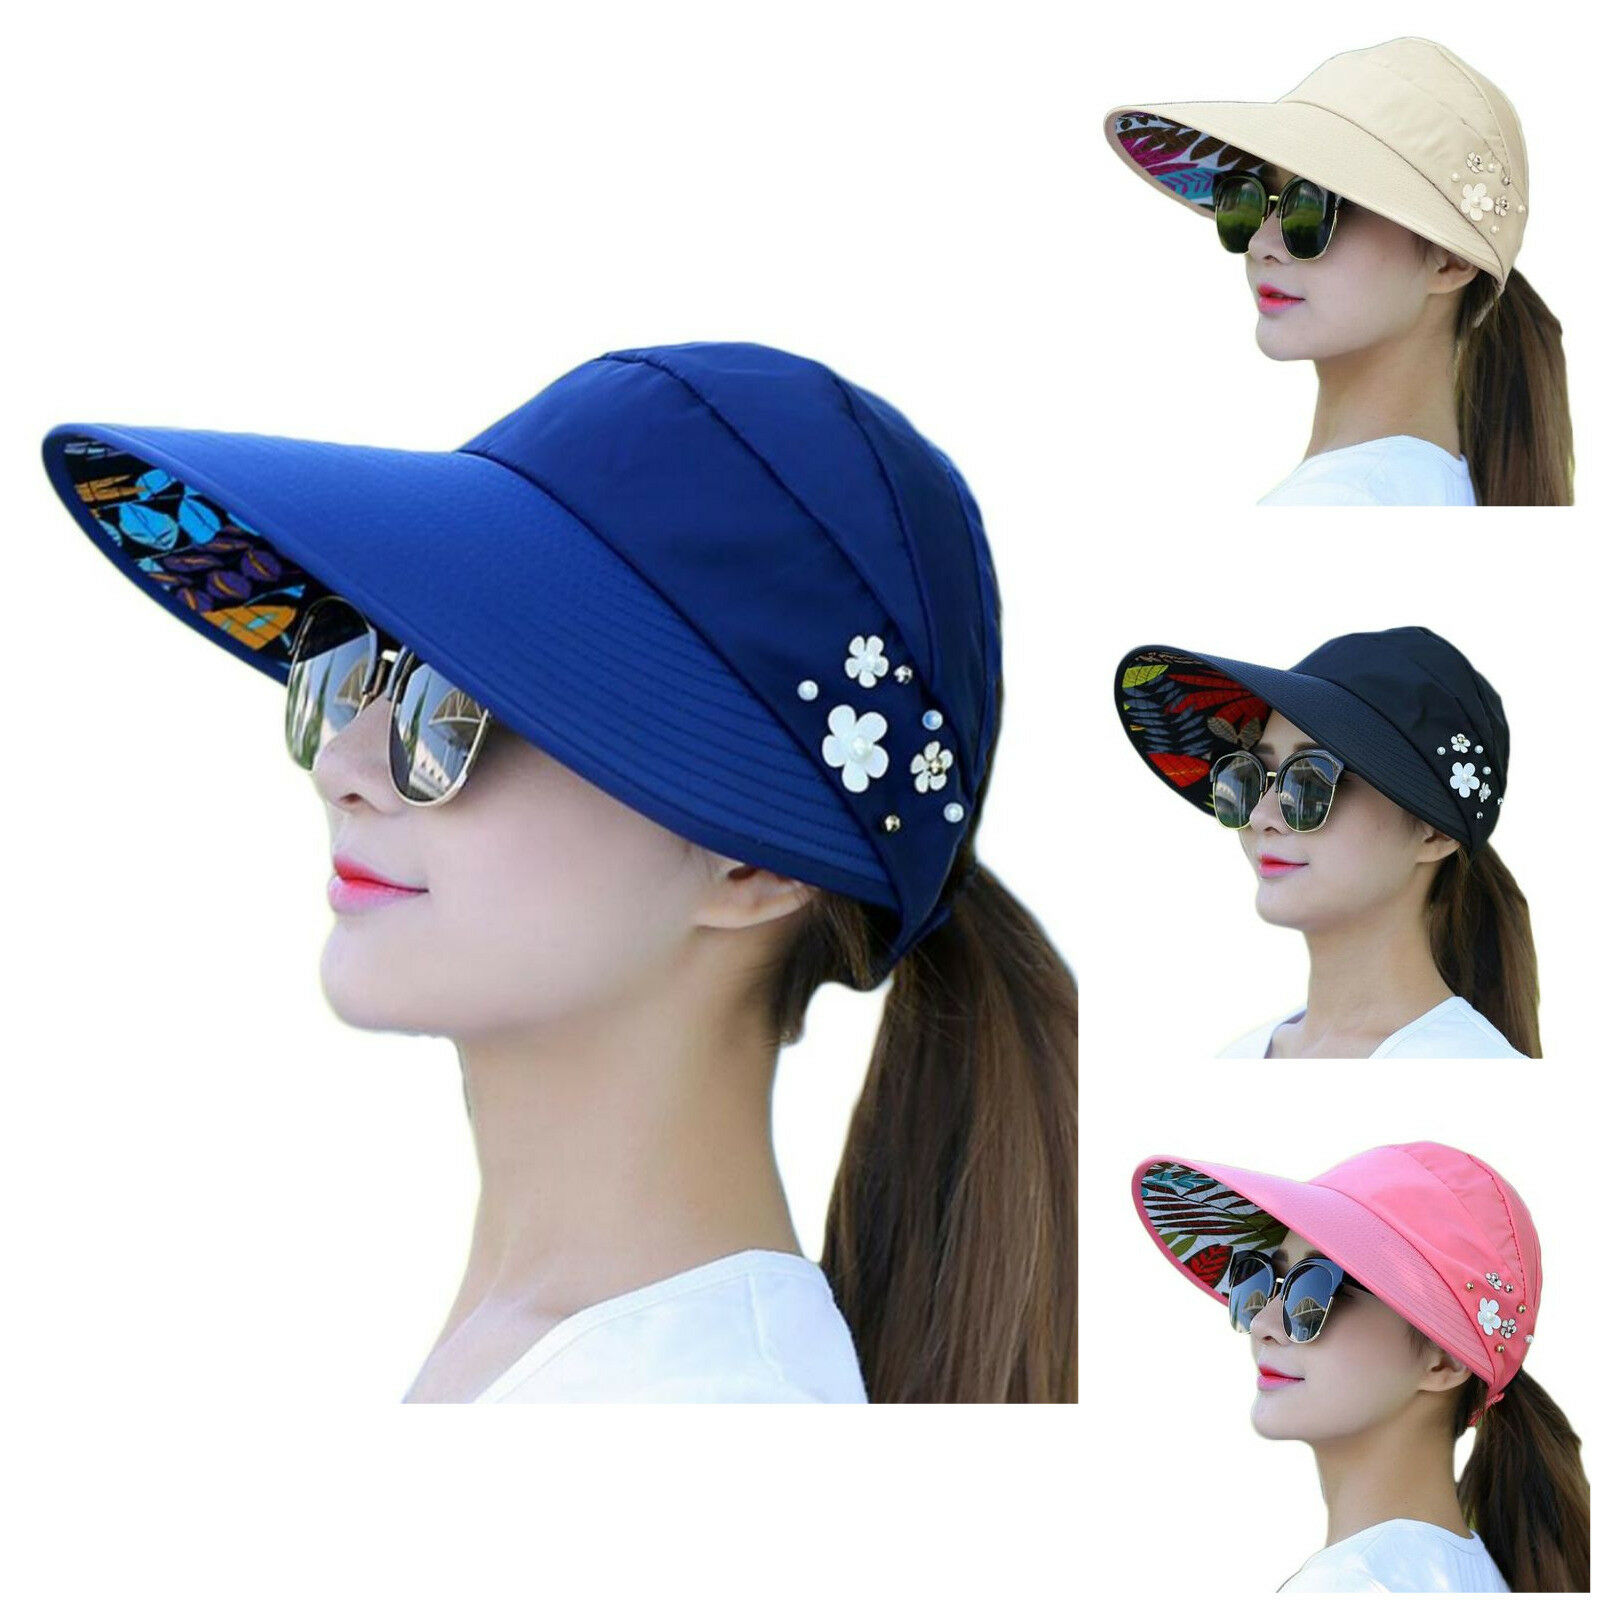 697750b4d49d Details about Rose Red Womens Sun Visor Hats Beach Golf Wide Brim Hats  Ladies UV Protection